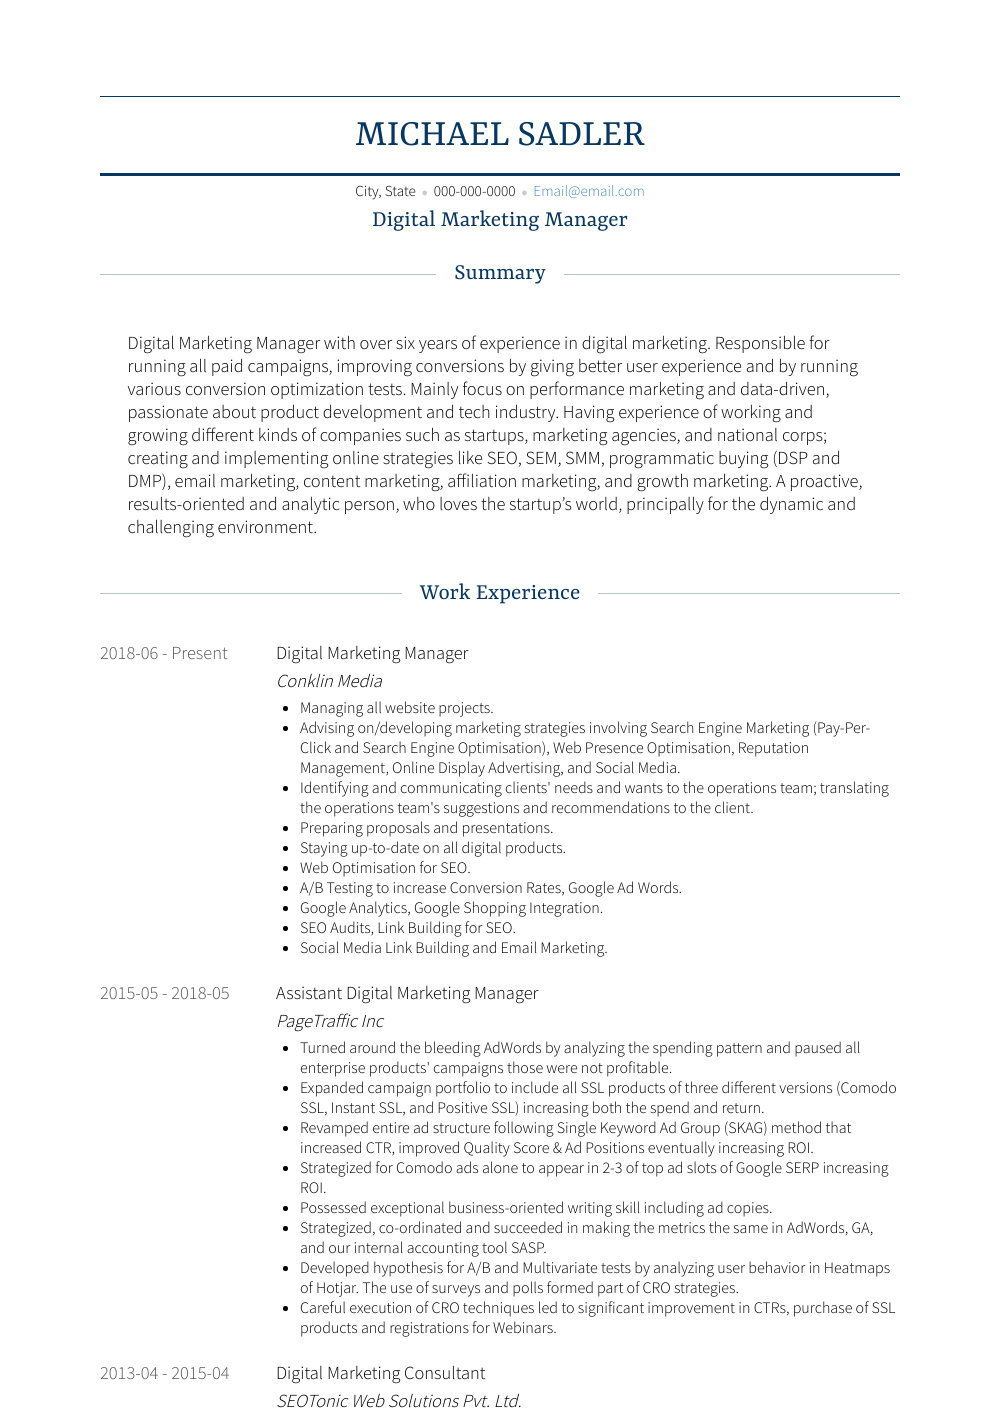 Digital Marketing Manager Resume Sample and Template